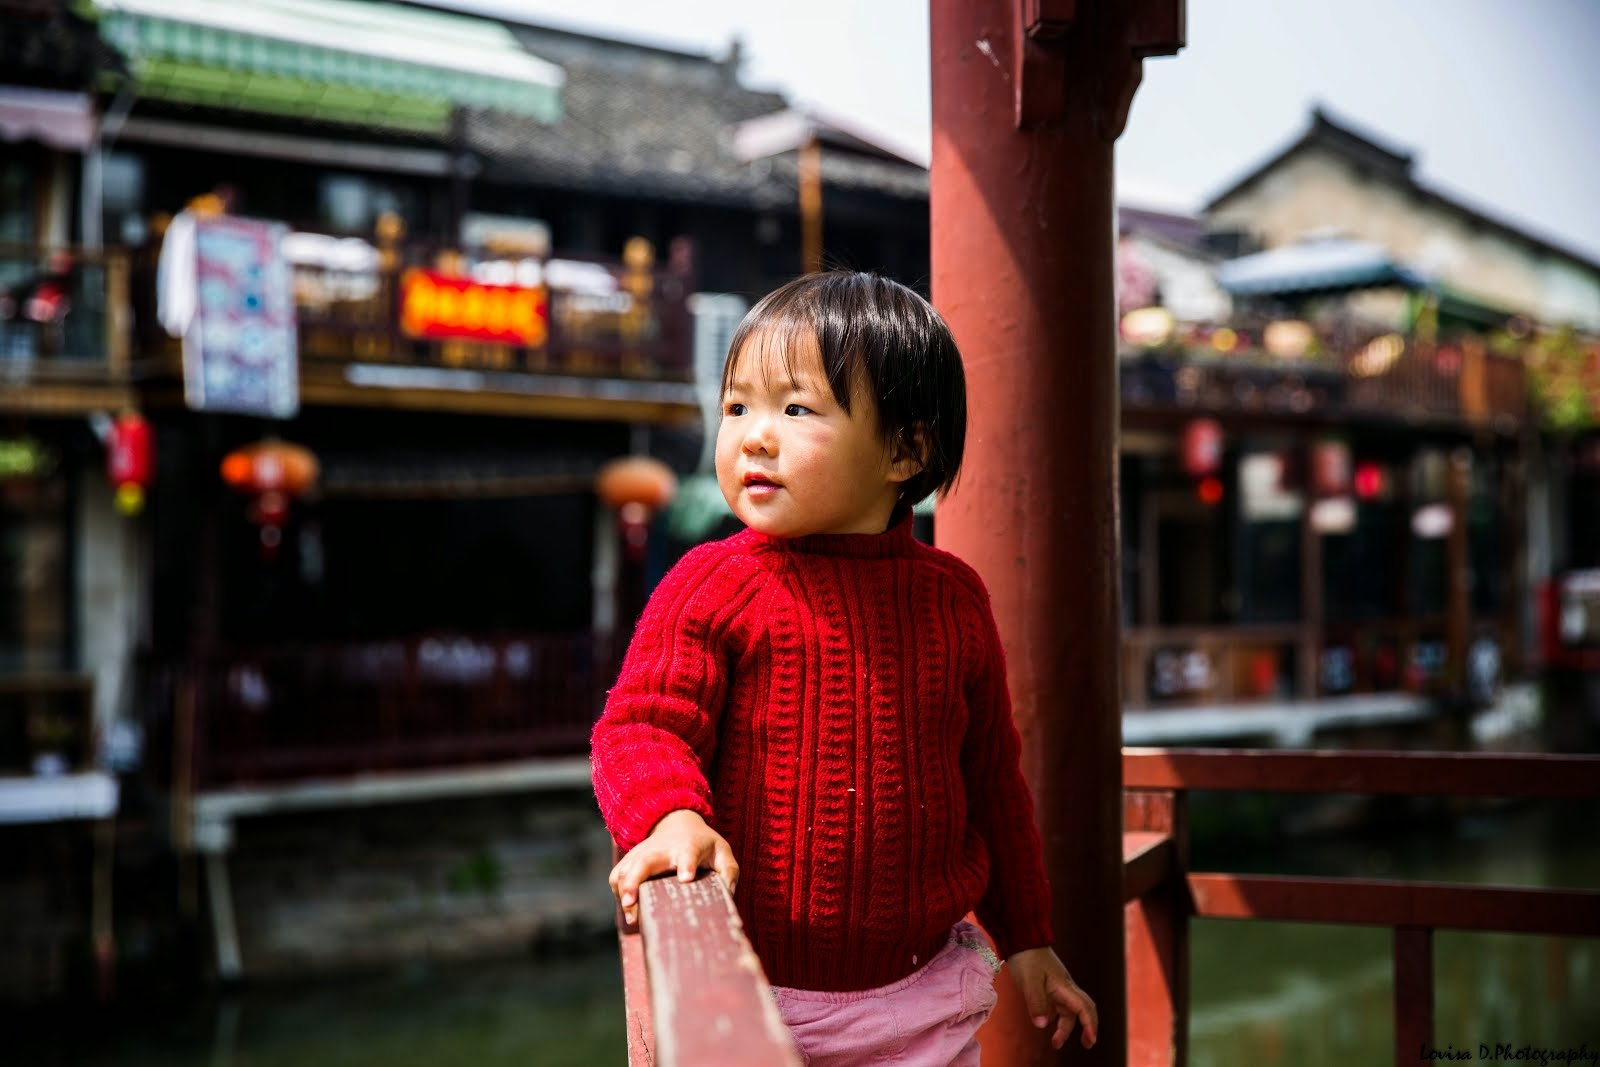 The little girl from Zhujiajio